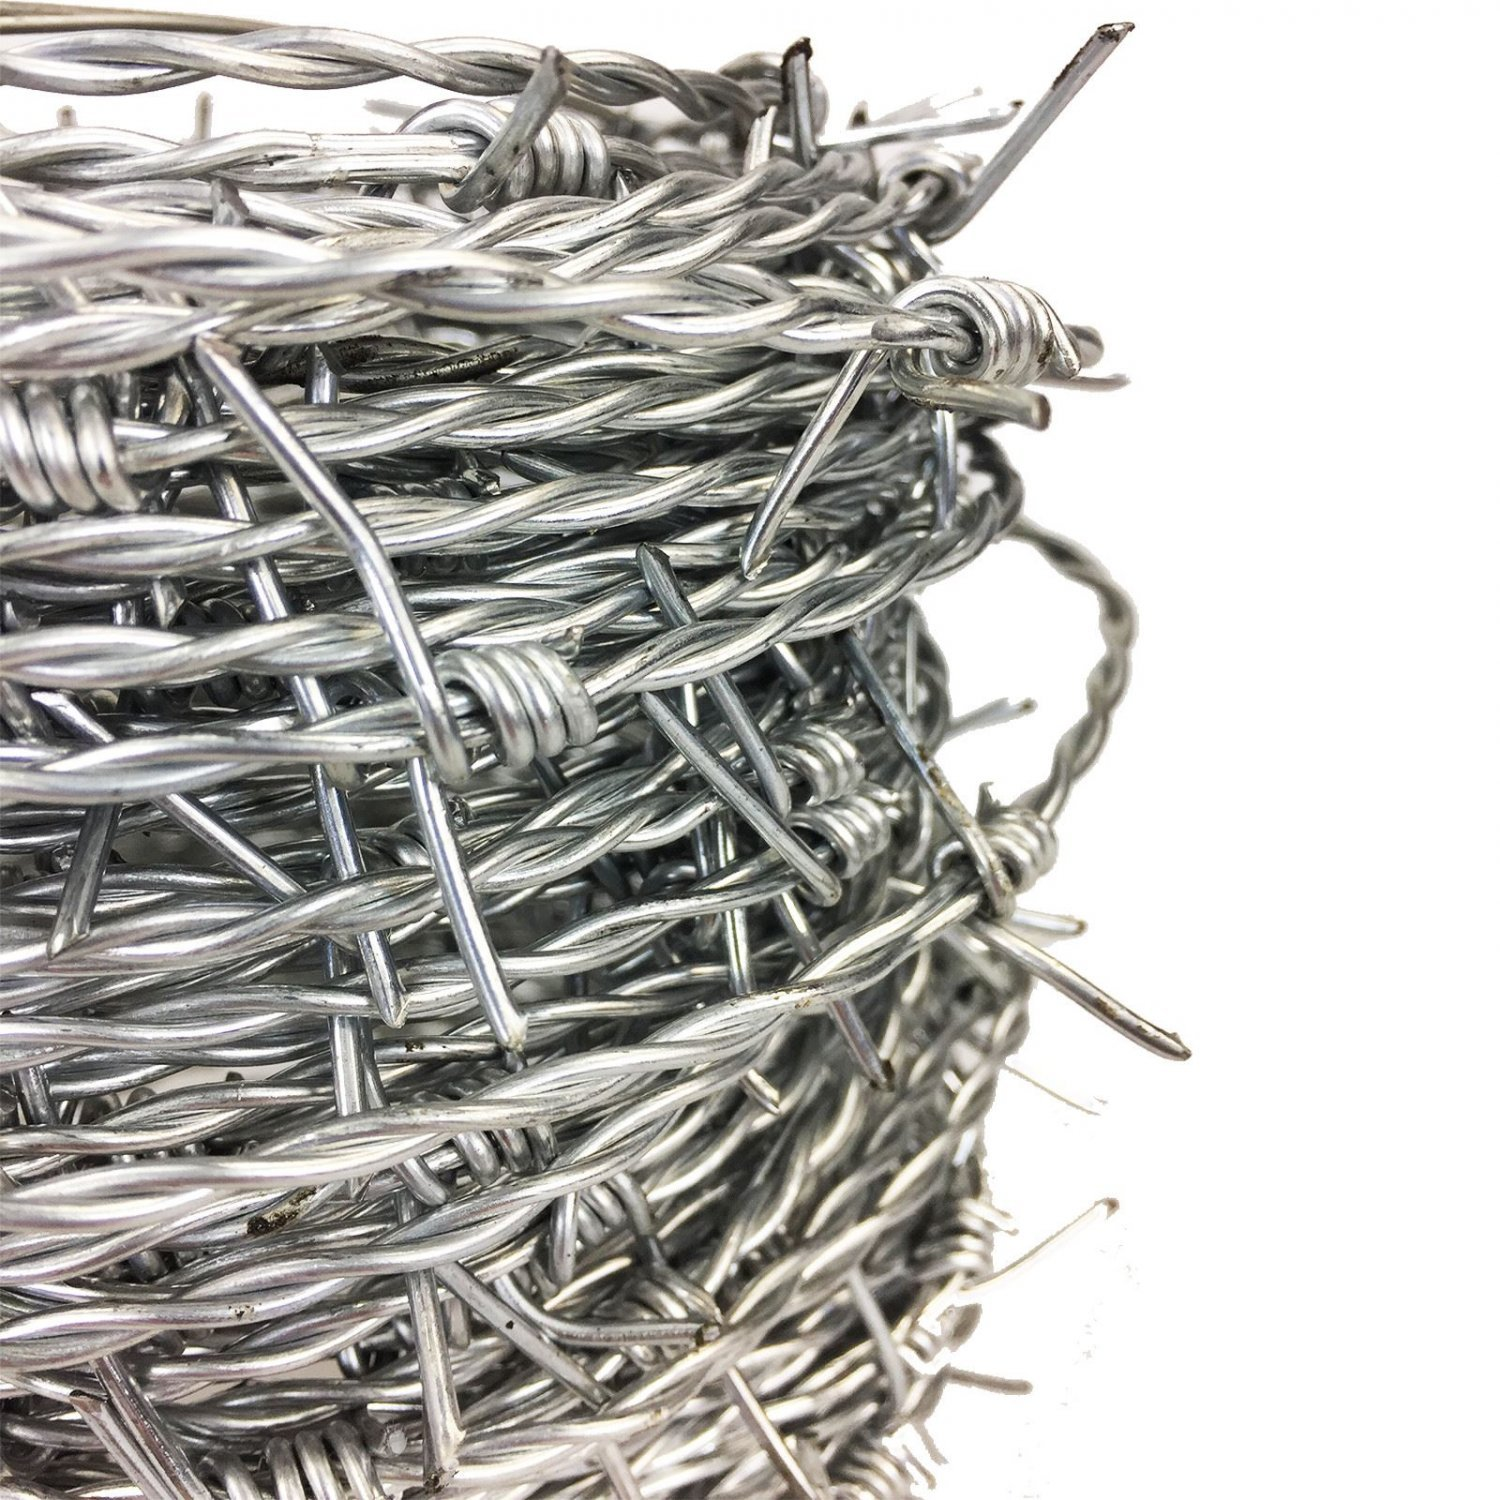 30m x 1.7mm Galvanised Steel Barbed Wire Livestock Security - £10.99 ...